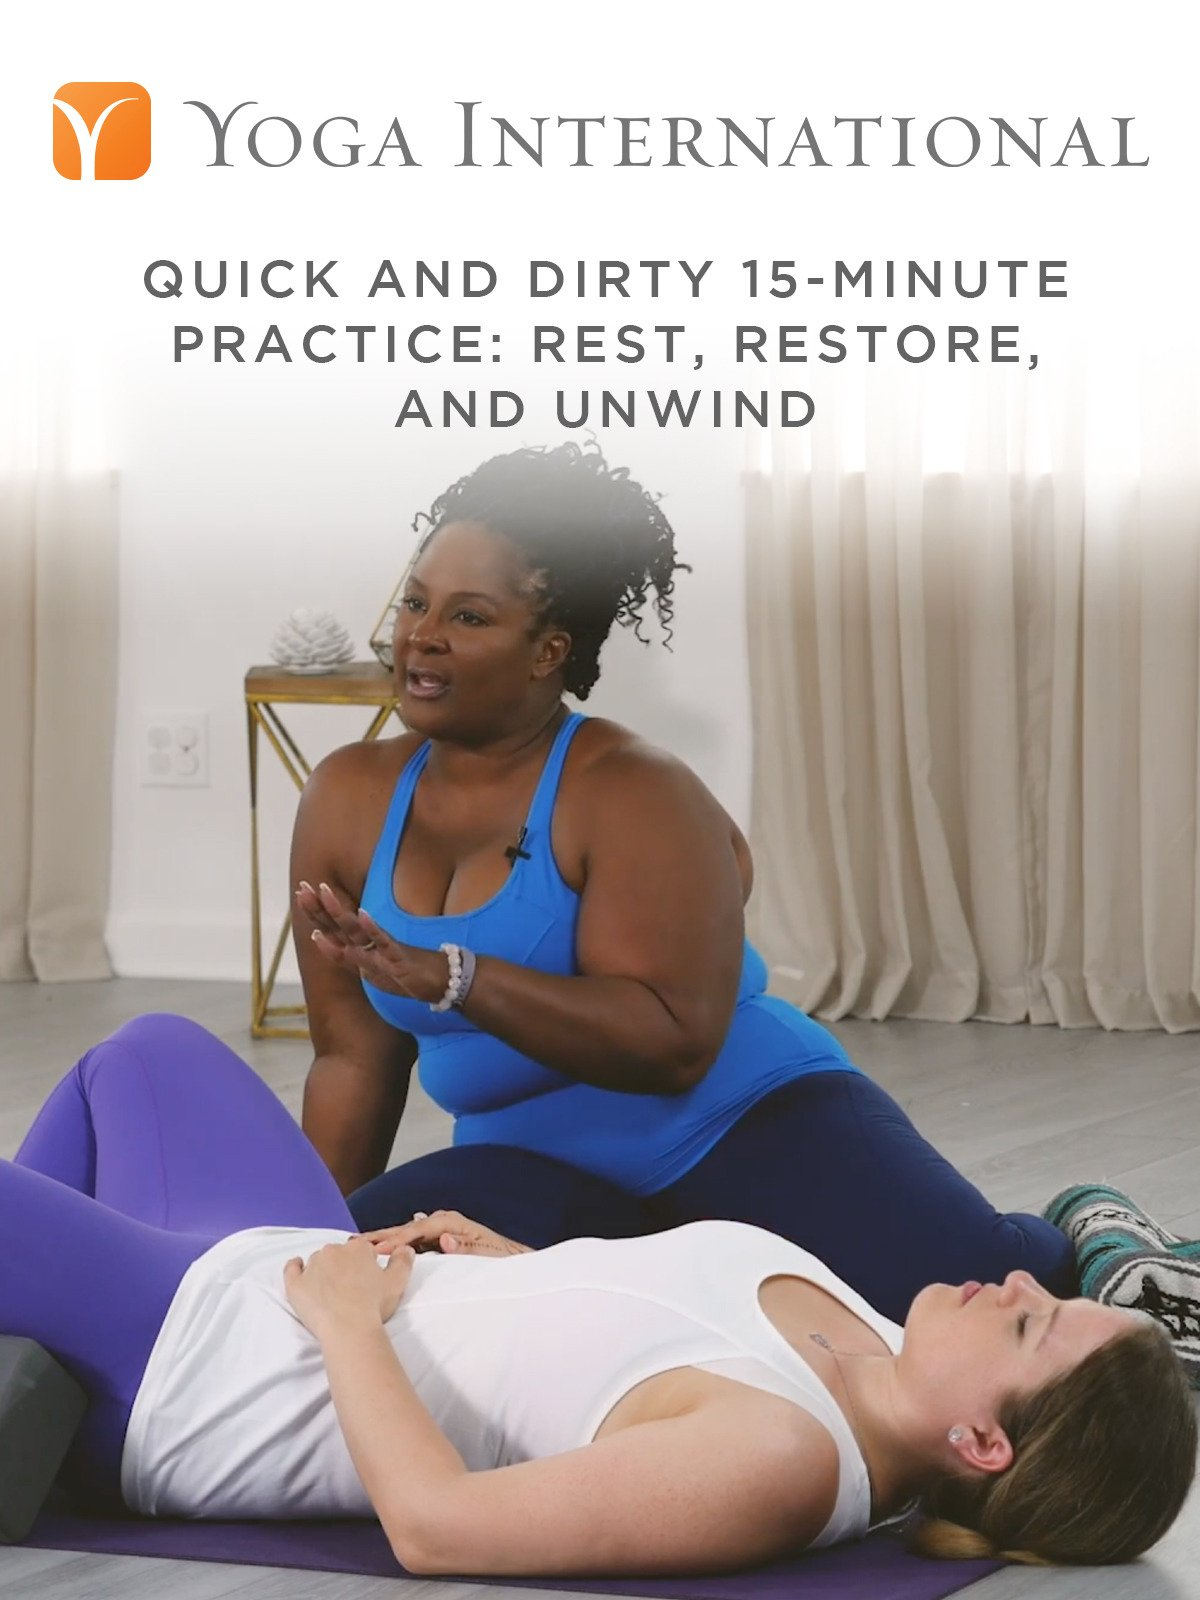 Quick and Dirty 15-Minute Practice: Rest, Restore, and Unwind